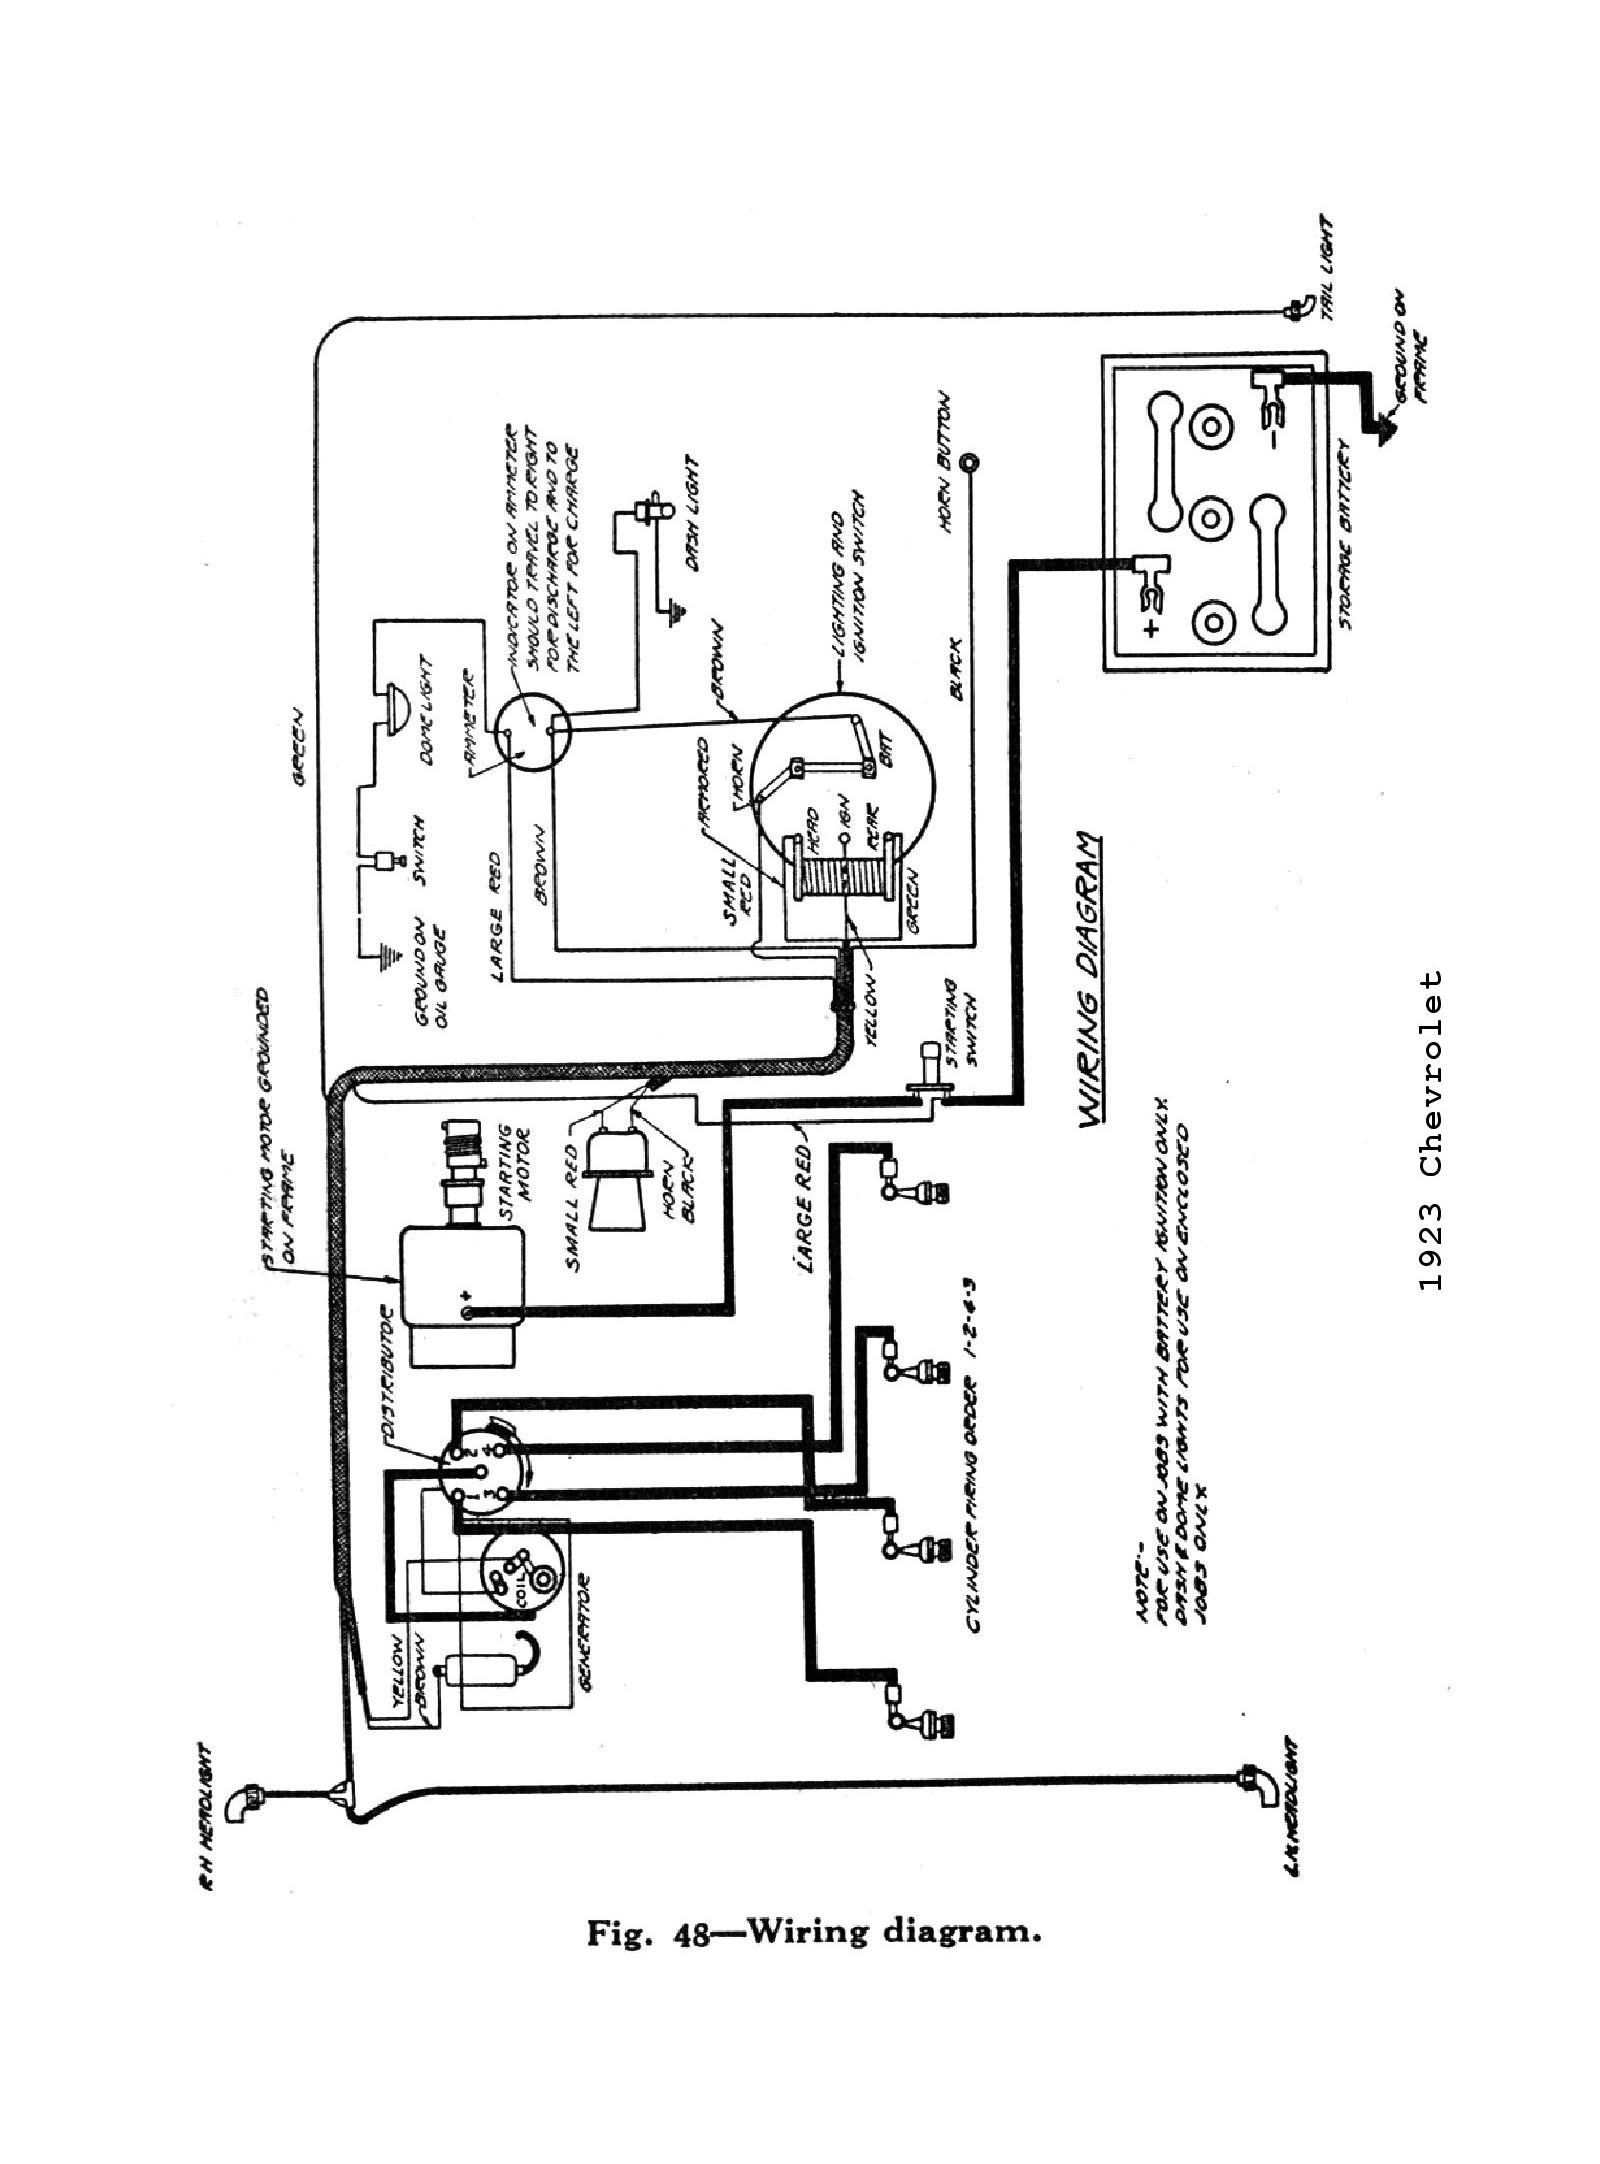 Dodge Ignition Wiring Diagram 1962 Chevy Nova Wiring